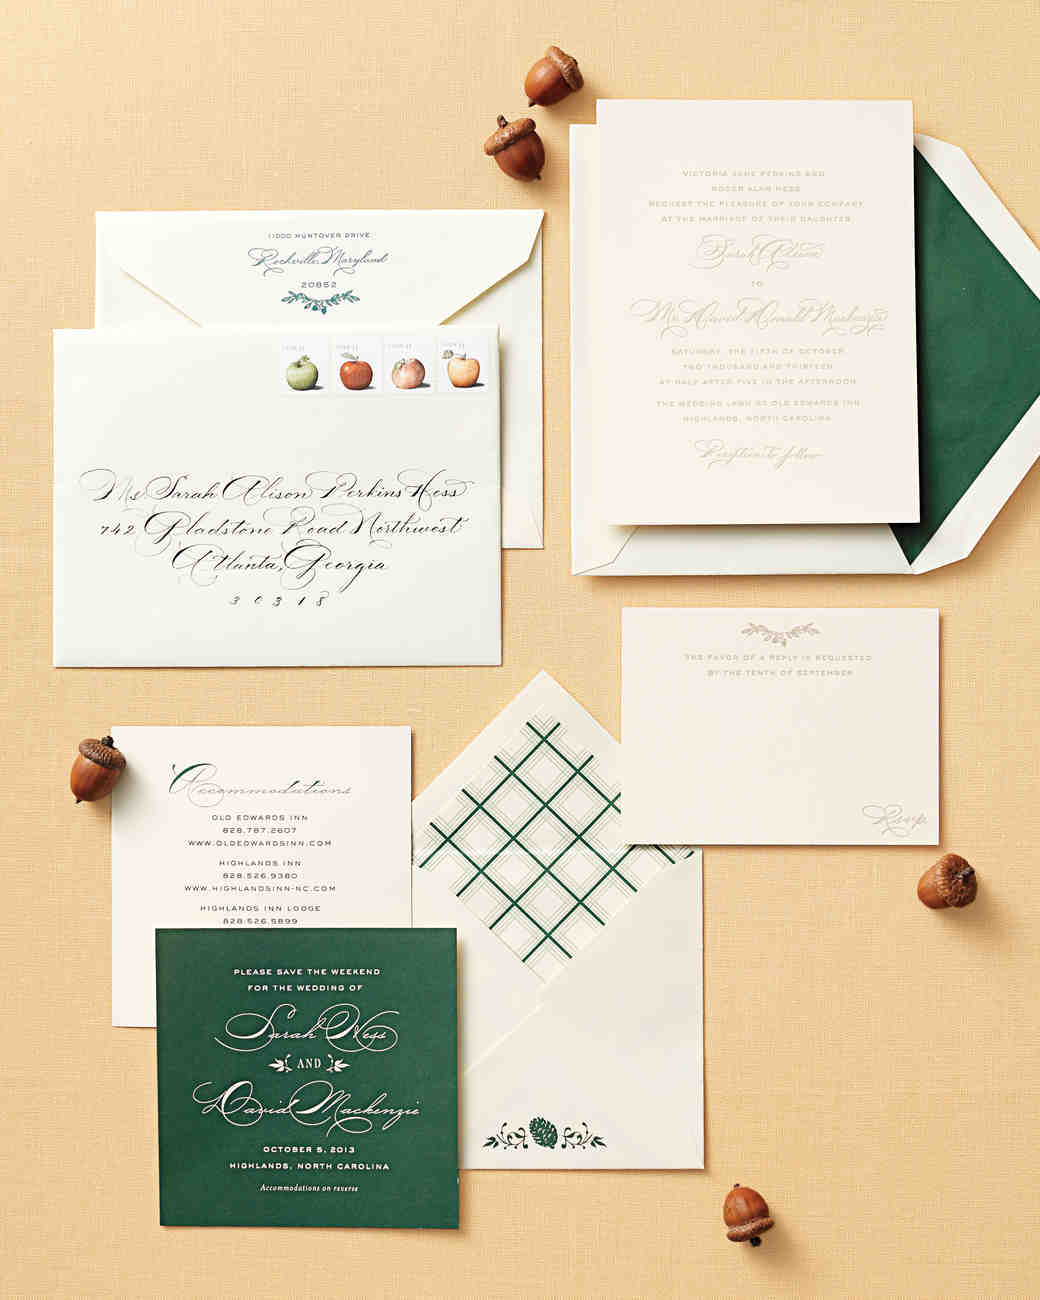 stationery-suite-sarah-and-david-057-exp-2-mwds110846.jpg